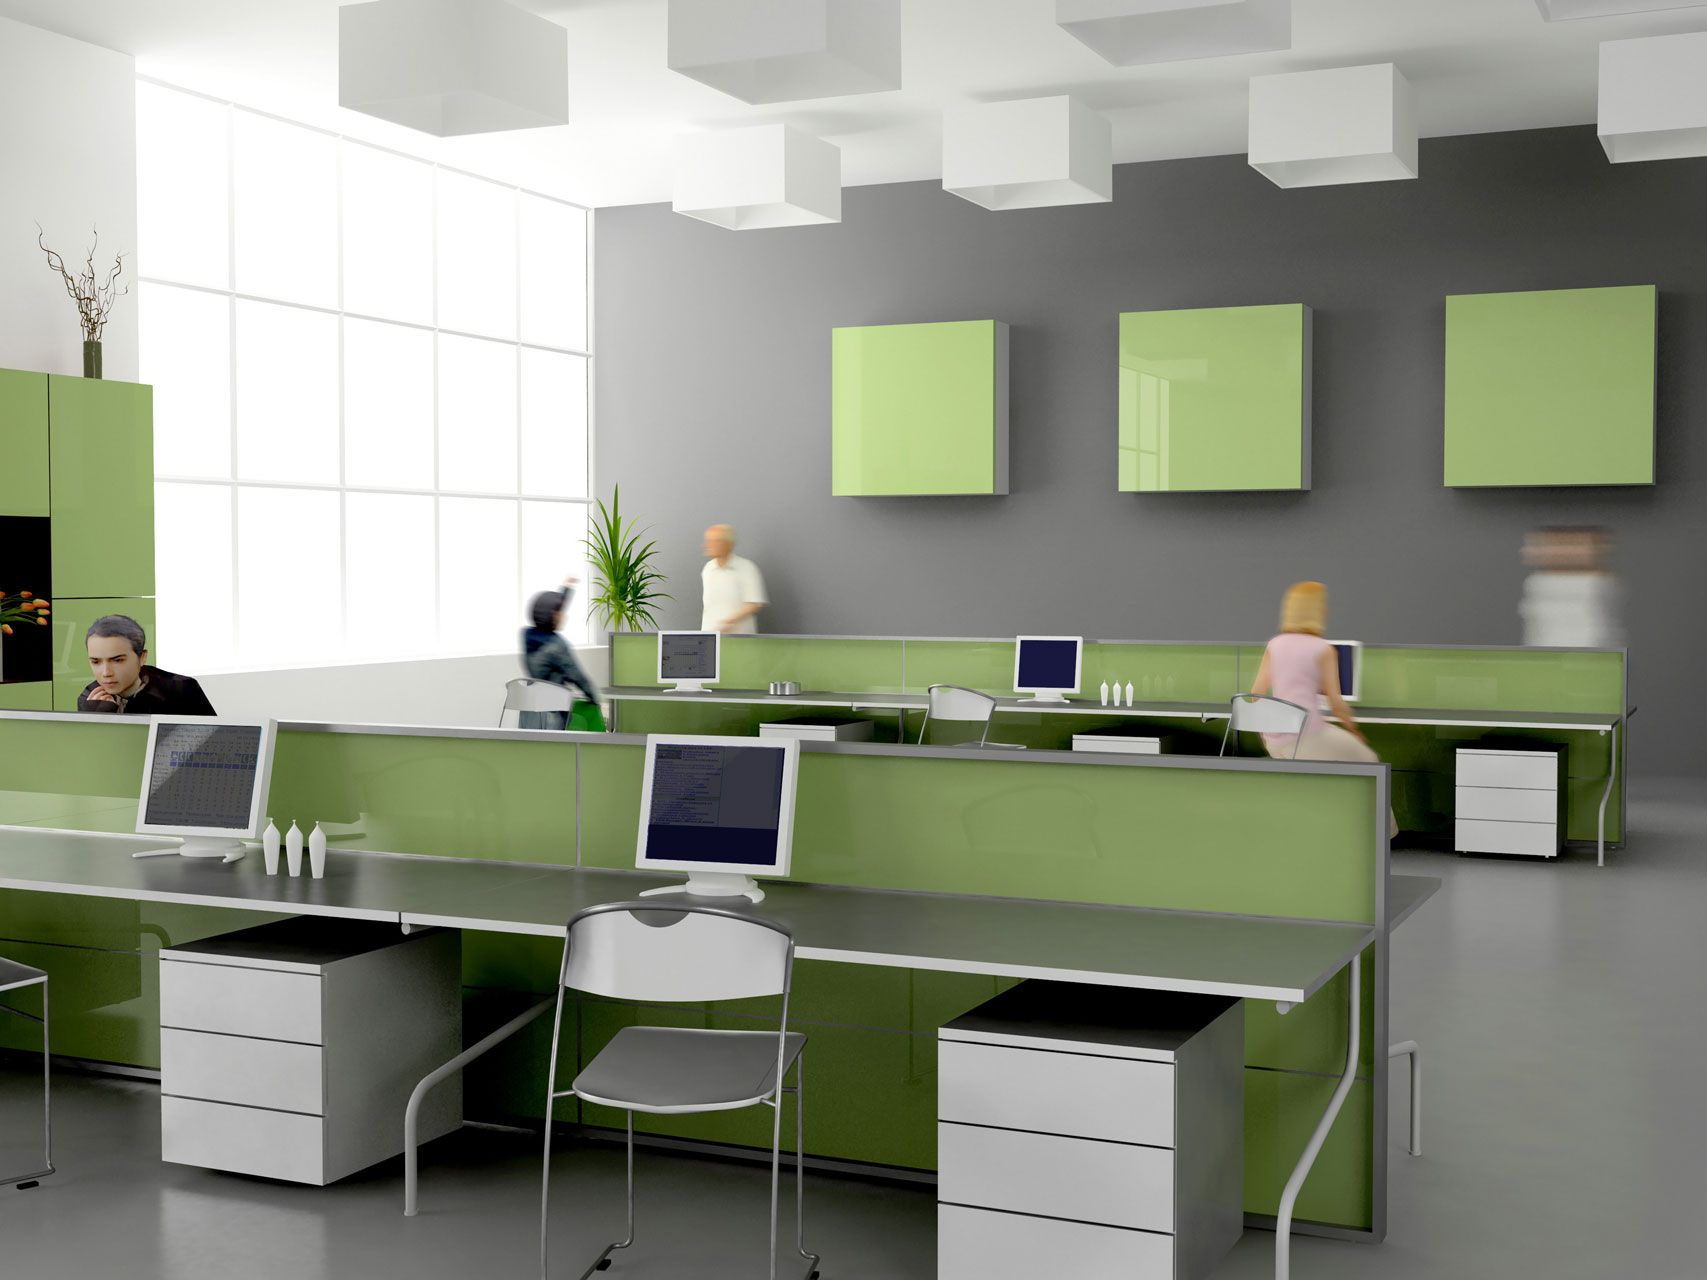 office wall paint colors. Open Office Interior Design And Furniture Smart White Gray Small Color Schemes Modern Long Table Computer Storage Plan Floor Wall Paint Colors E